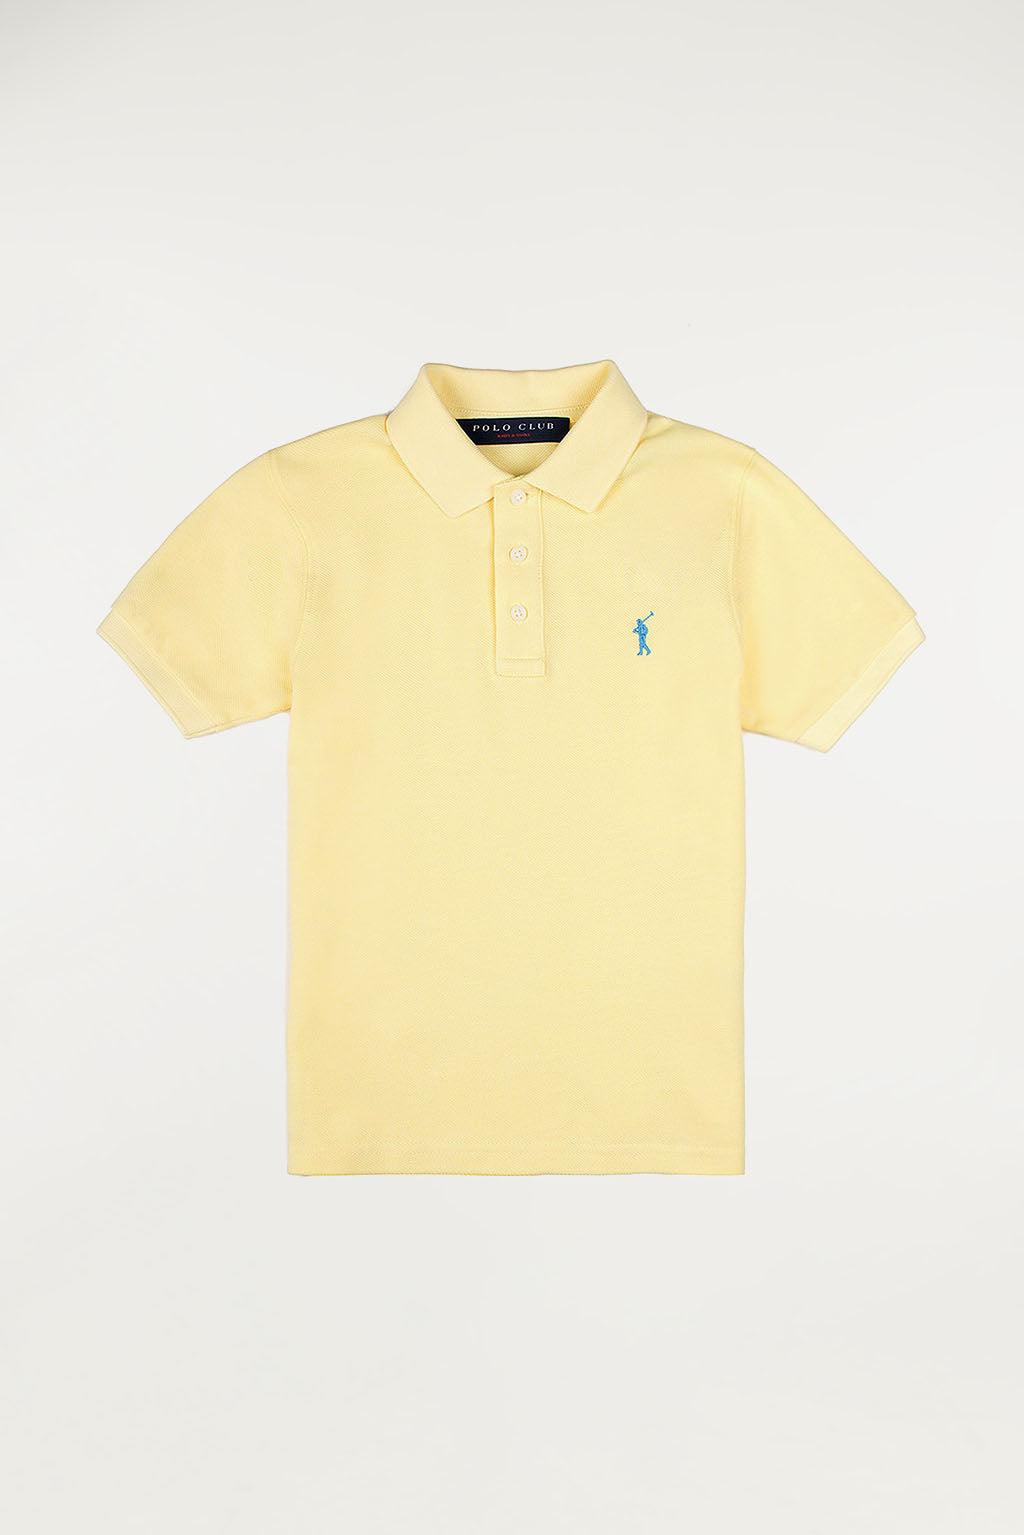 Children's Basic Polo Cotton